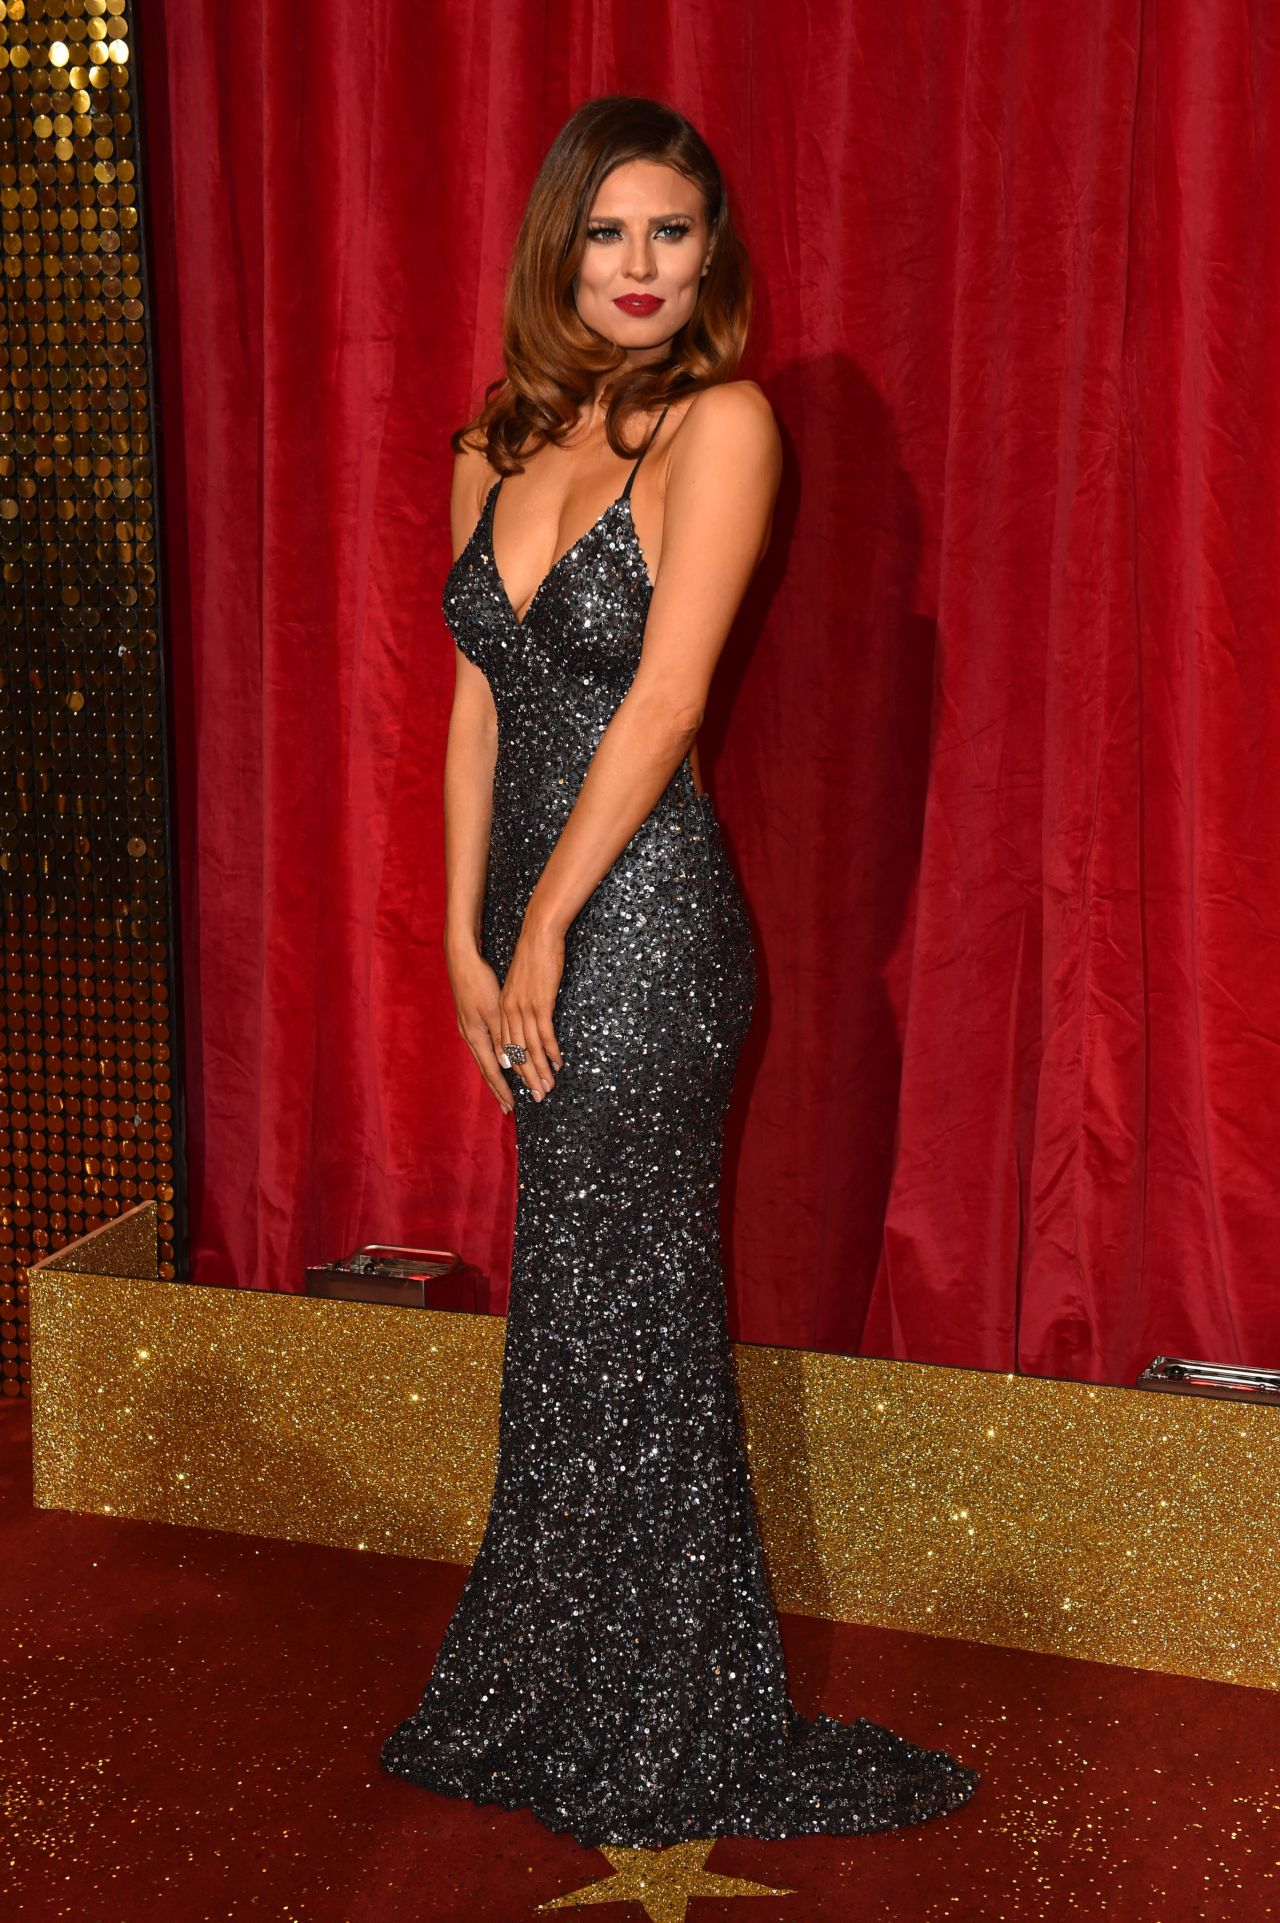 twinnie lee moore boyfriendtwinnie lee moore the voice, twinnie lee moore instagram, twinnie lee moore advert, twinnie lee moore hollyoaks, twinnie lee moore and max milner, twinnie lee moore home, twinnie lee moore music, twinnie lee moore twitter, twinnie lee moore adam walsh, twinnie lee moore real name, twinnie lee moore the voice uk, twinnie lee moore the voice audition, twinnie lee moore rock of ages, twinnie lee moore cool, twinnie lee moore the voice youtube, twinnie lee moore feet, twinnie lee moore boyfriend, twinnie lee moore singing, twinnie lee moore hot, twinnie lee moore height